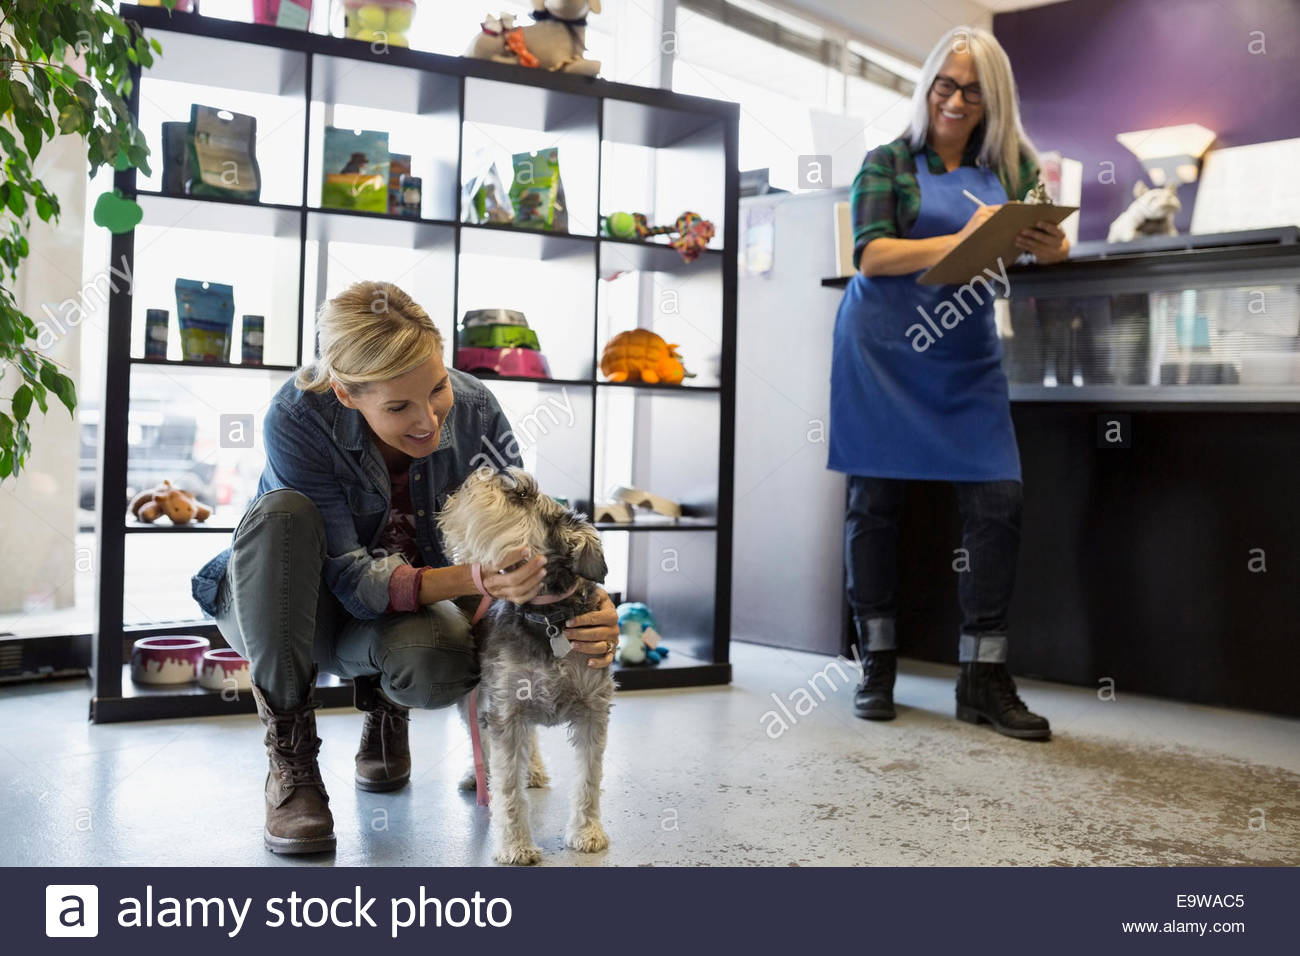 Woman saying goodbye to schnauzer at daycare - Stock Image